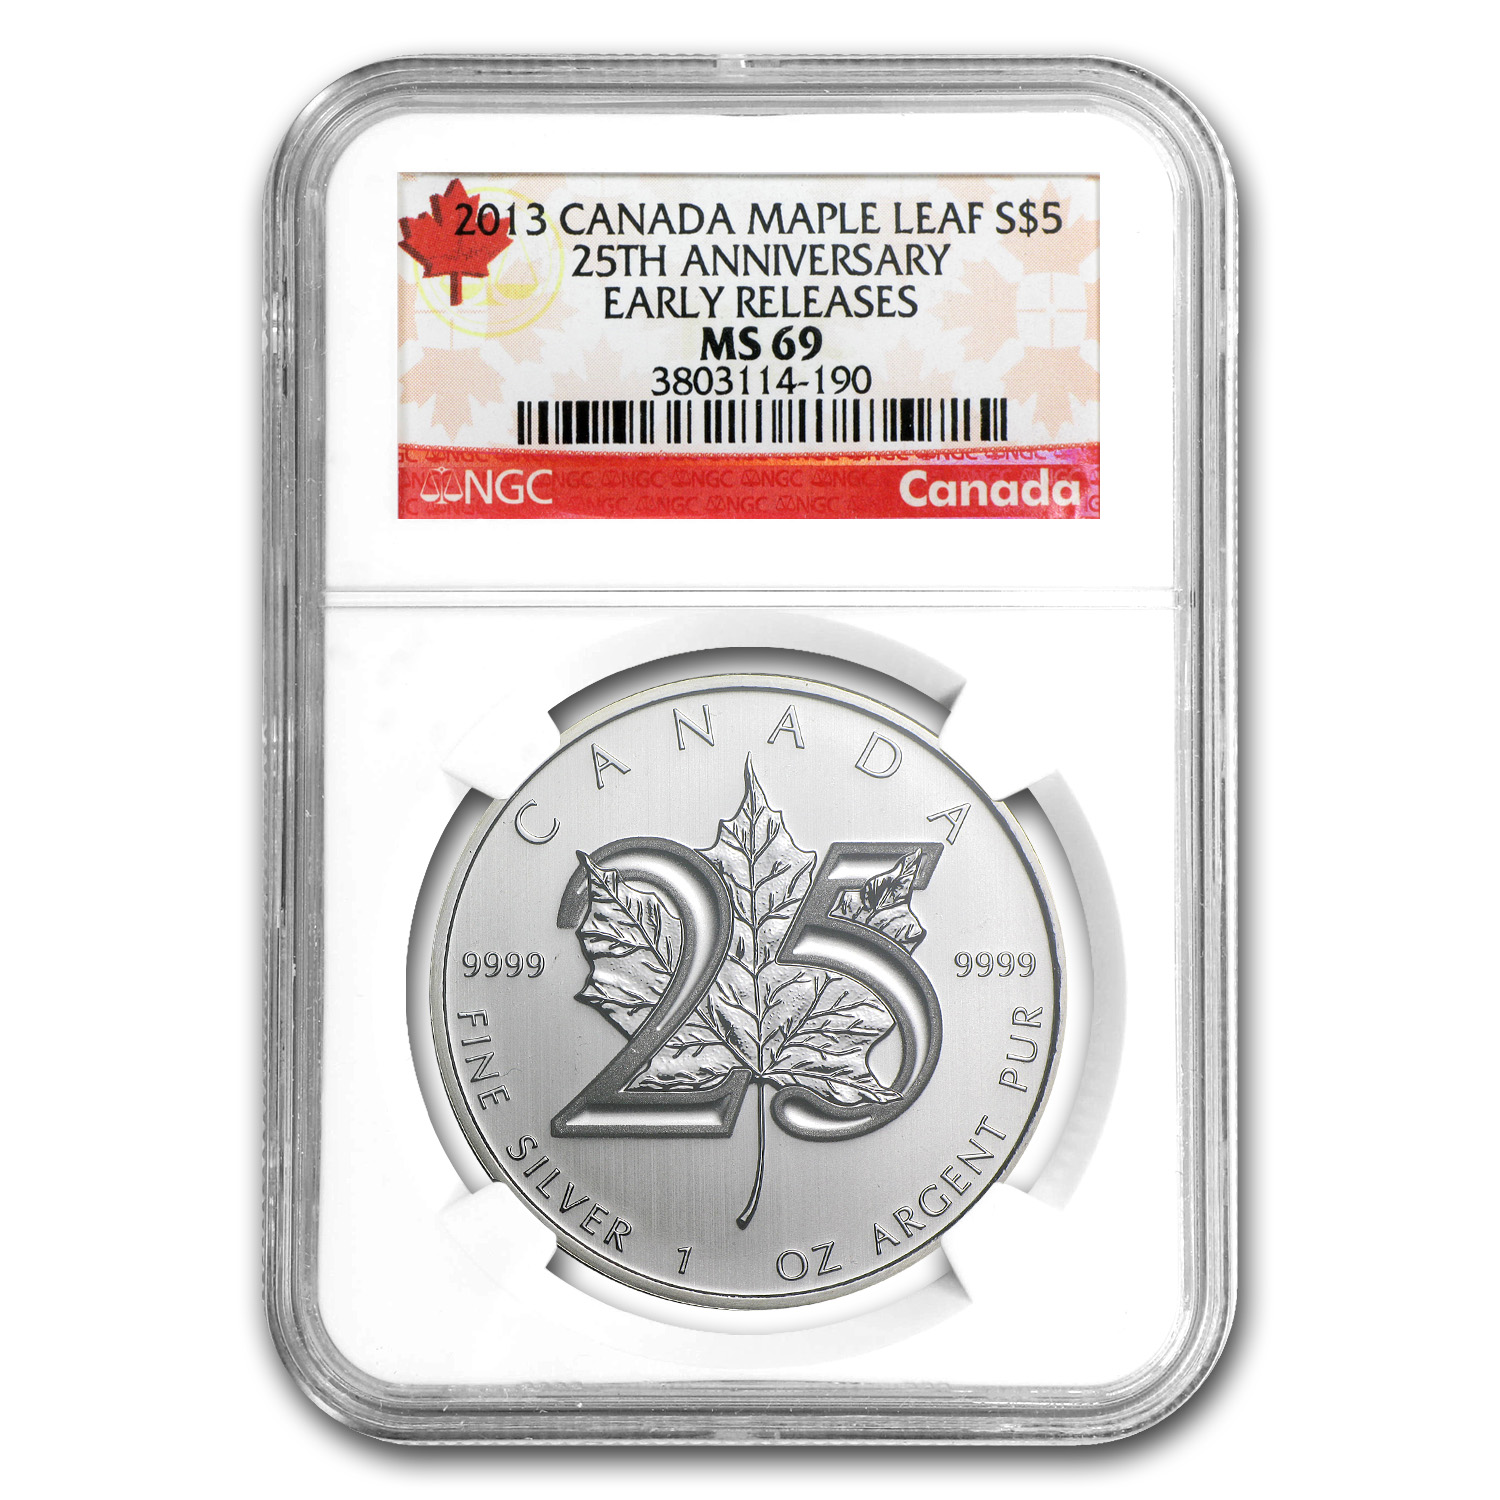 2013 Canada 1 oz Silver Maple Leaf MS-69 NGC (ER, 25th Anniv)